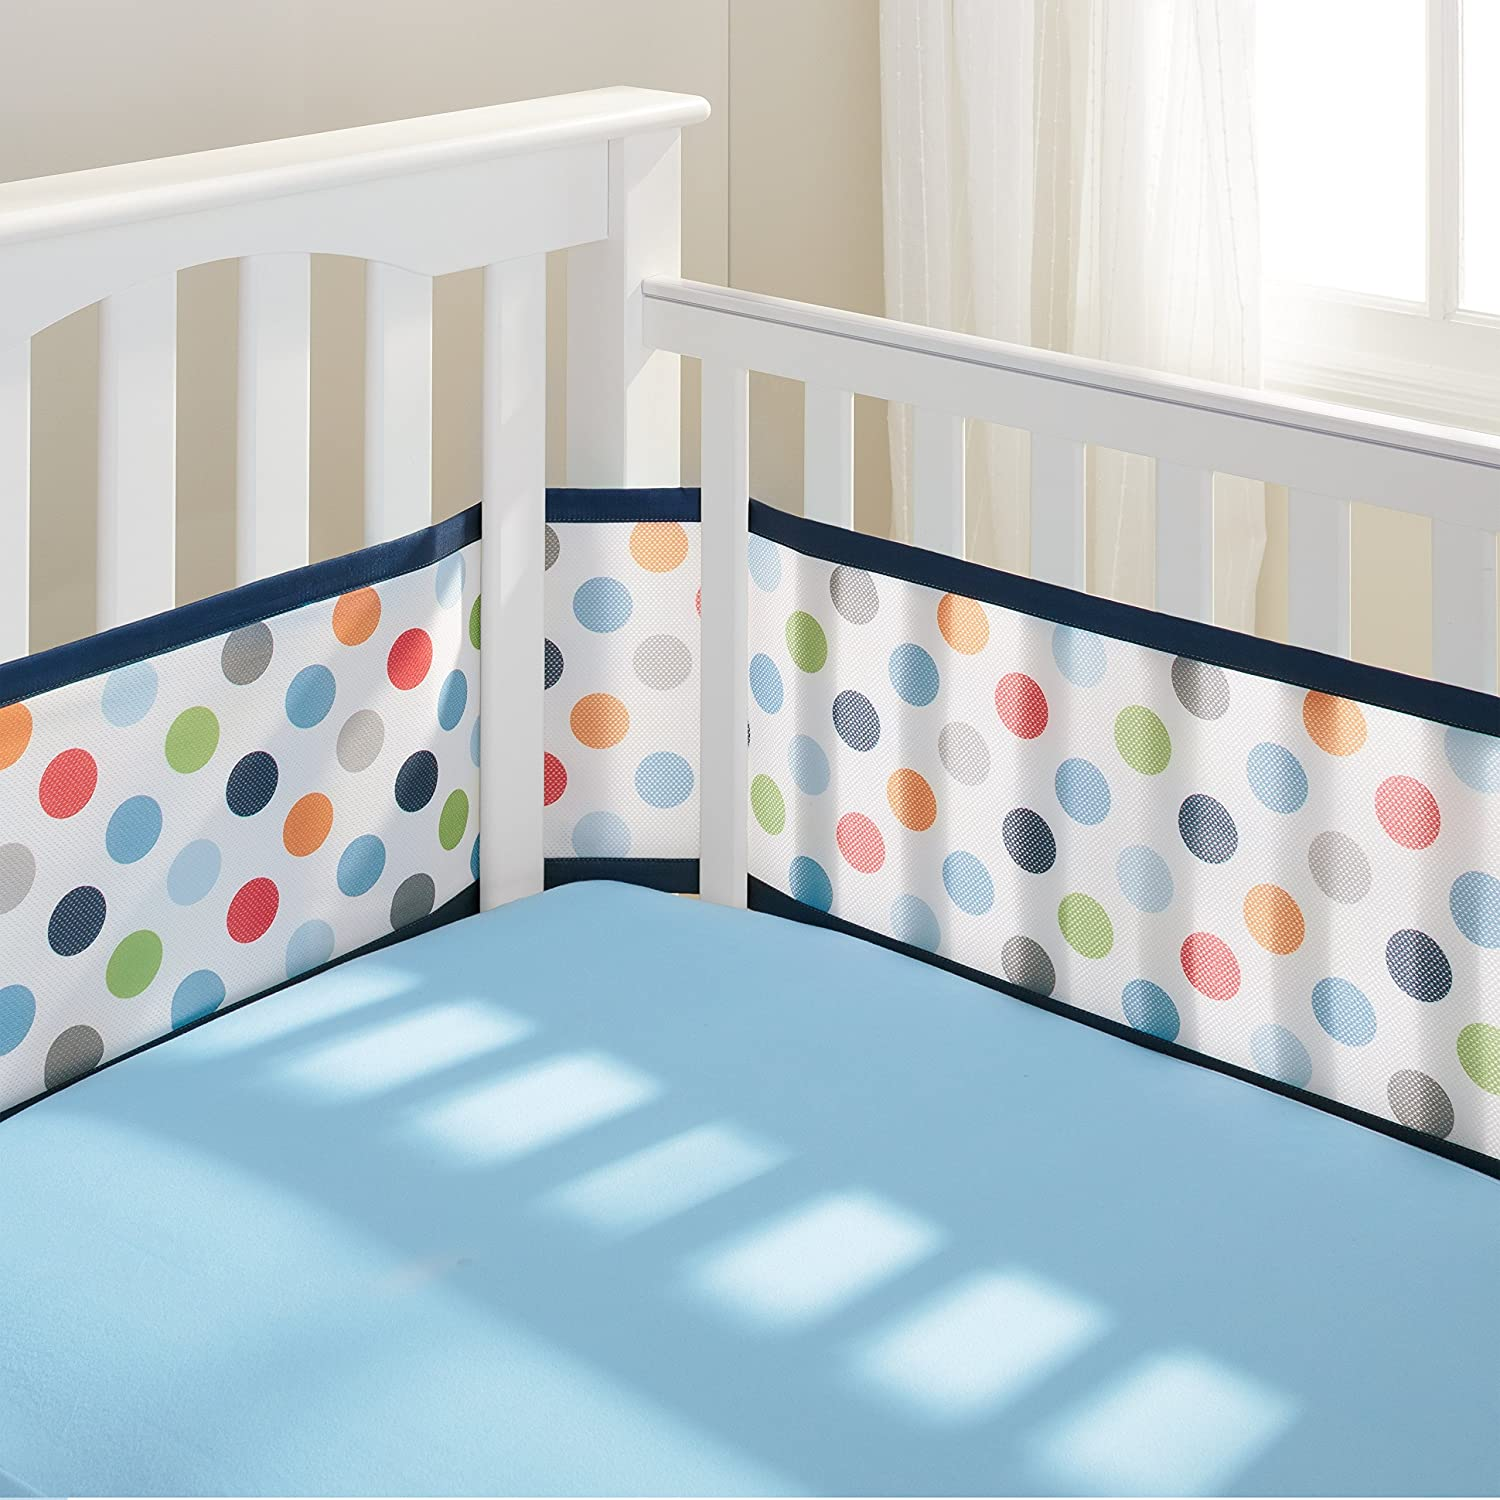 white pads bumper safari quilt full bedding furniture secret and grey rail pastel the lovely baby colours crib of gorgeous set hot sets successful including a nursery bundles size bumpers handmade green pink oration cot cus black